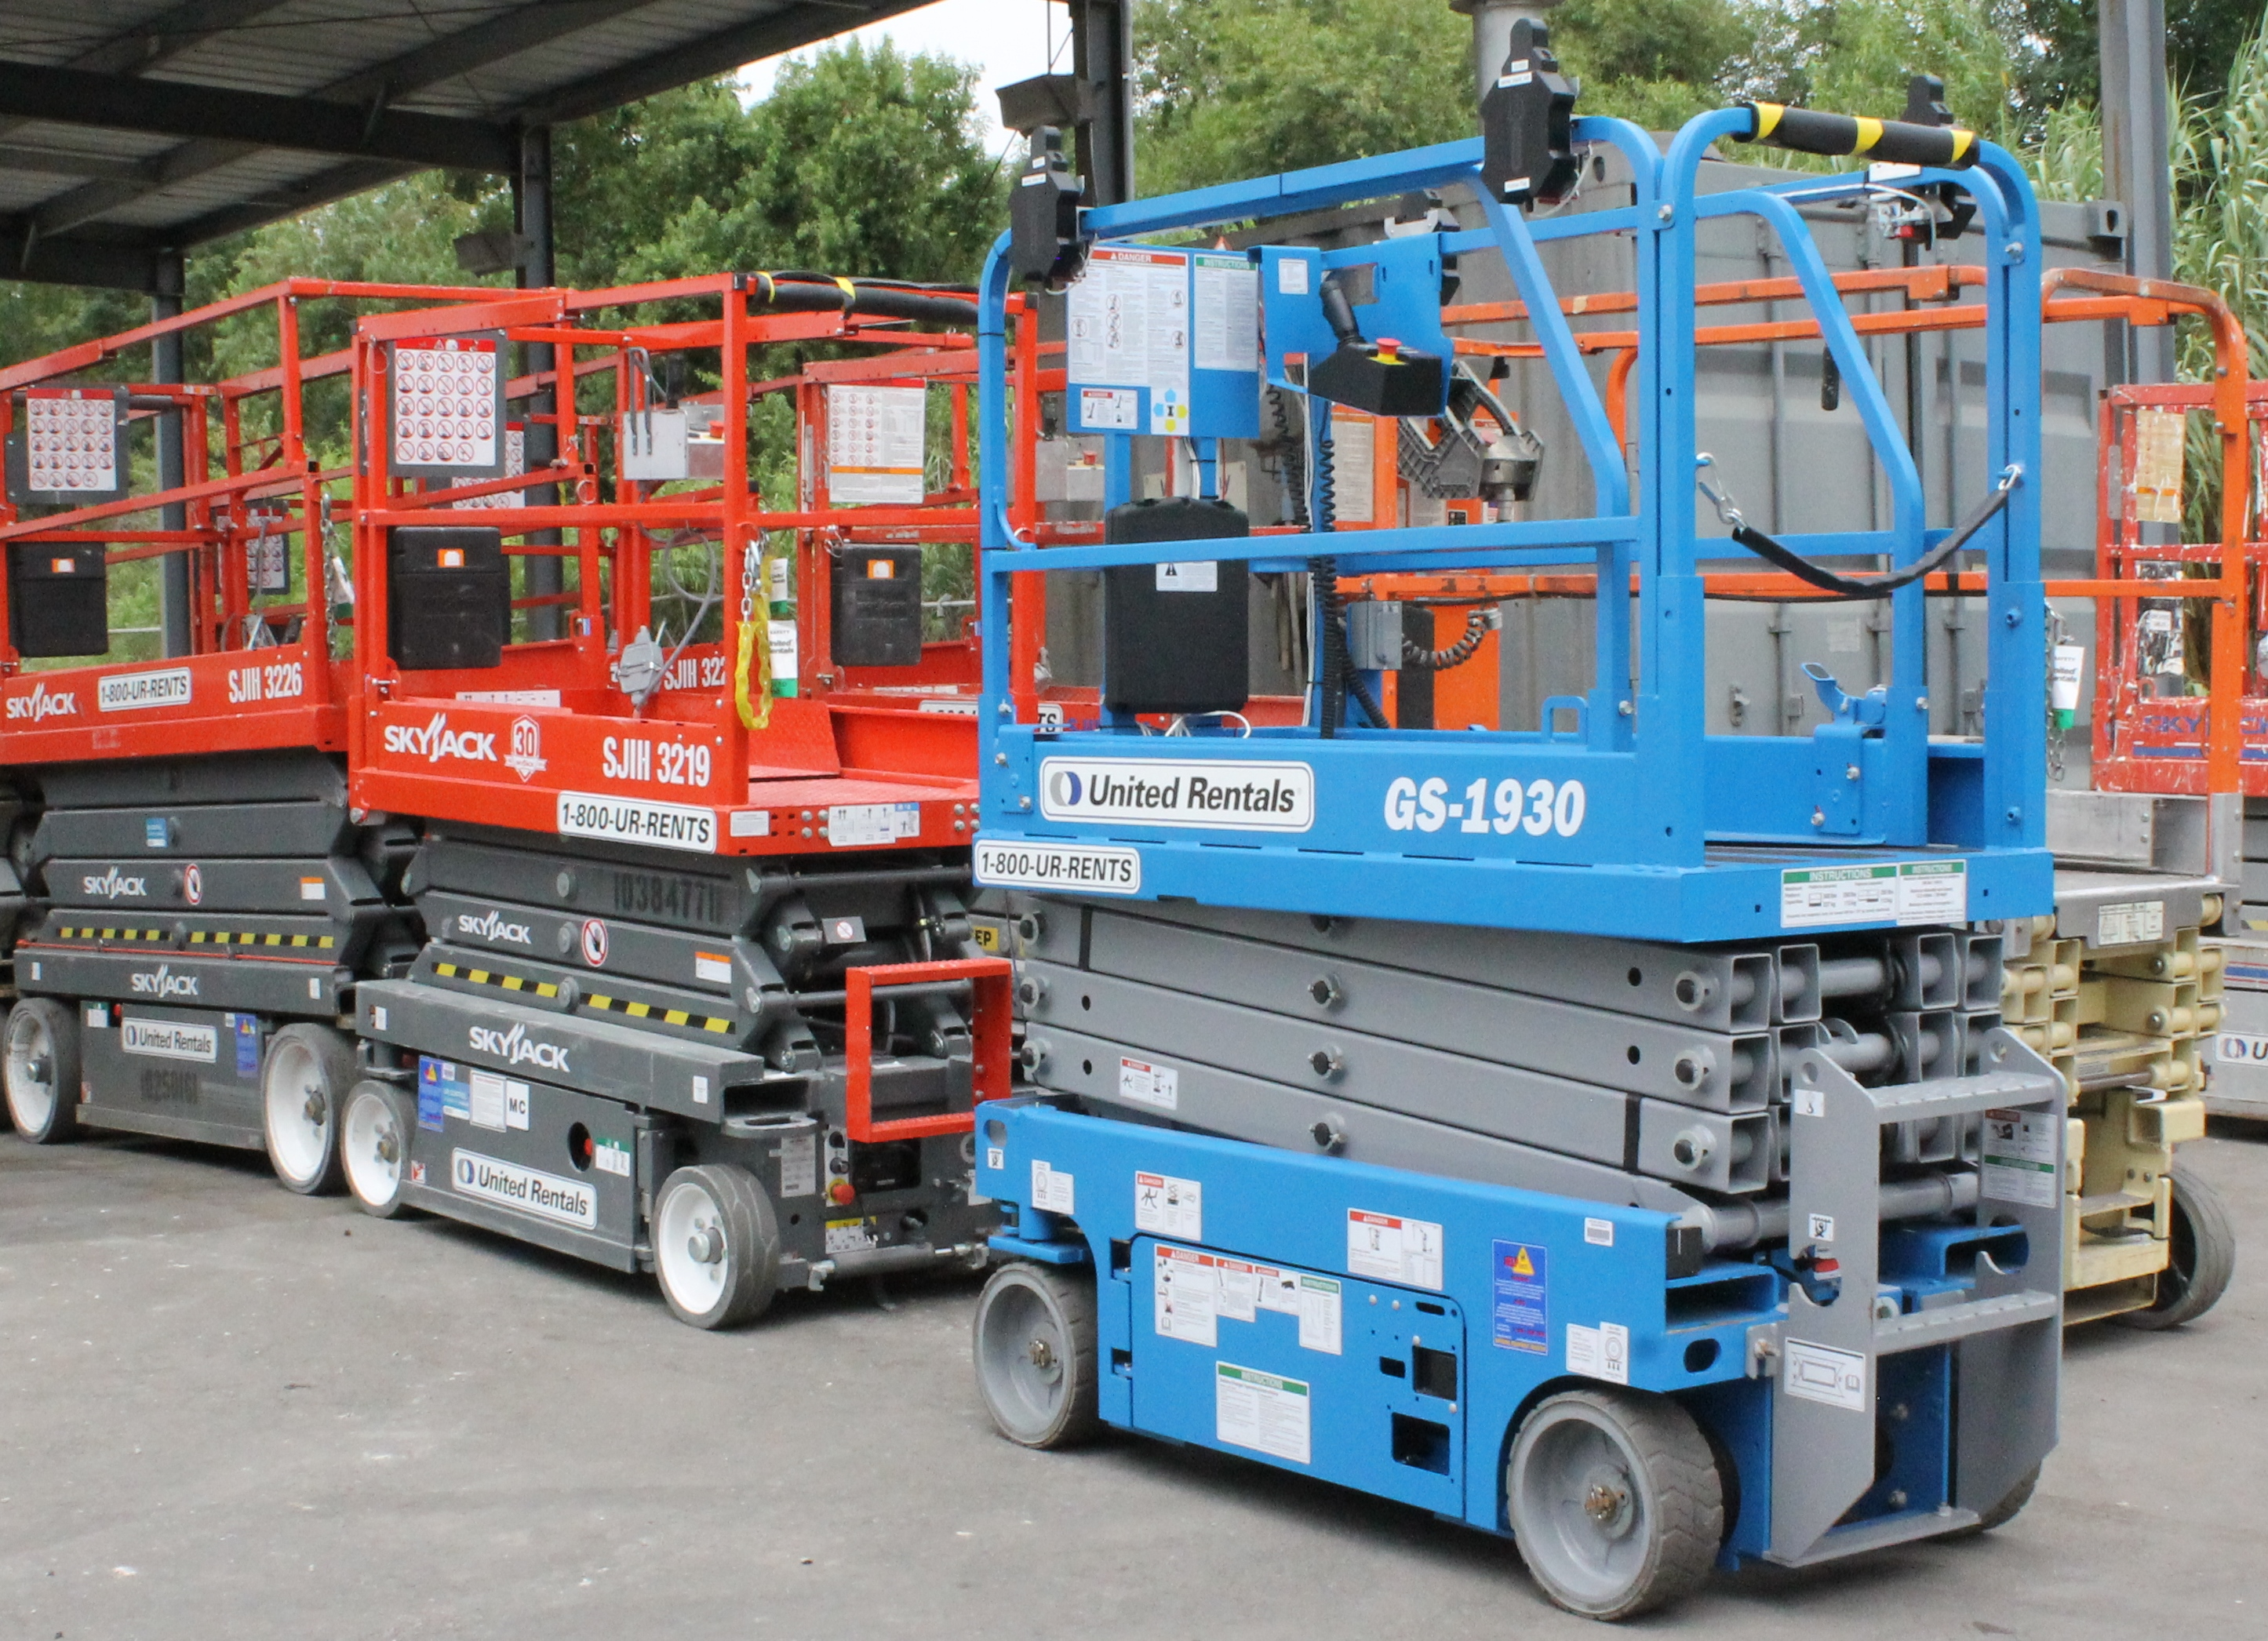 United Rentals scissor lifts. The small modules attached to the top rails make them autonomous.